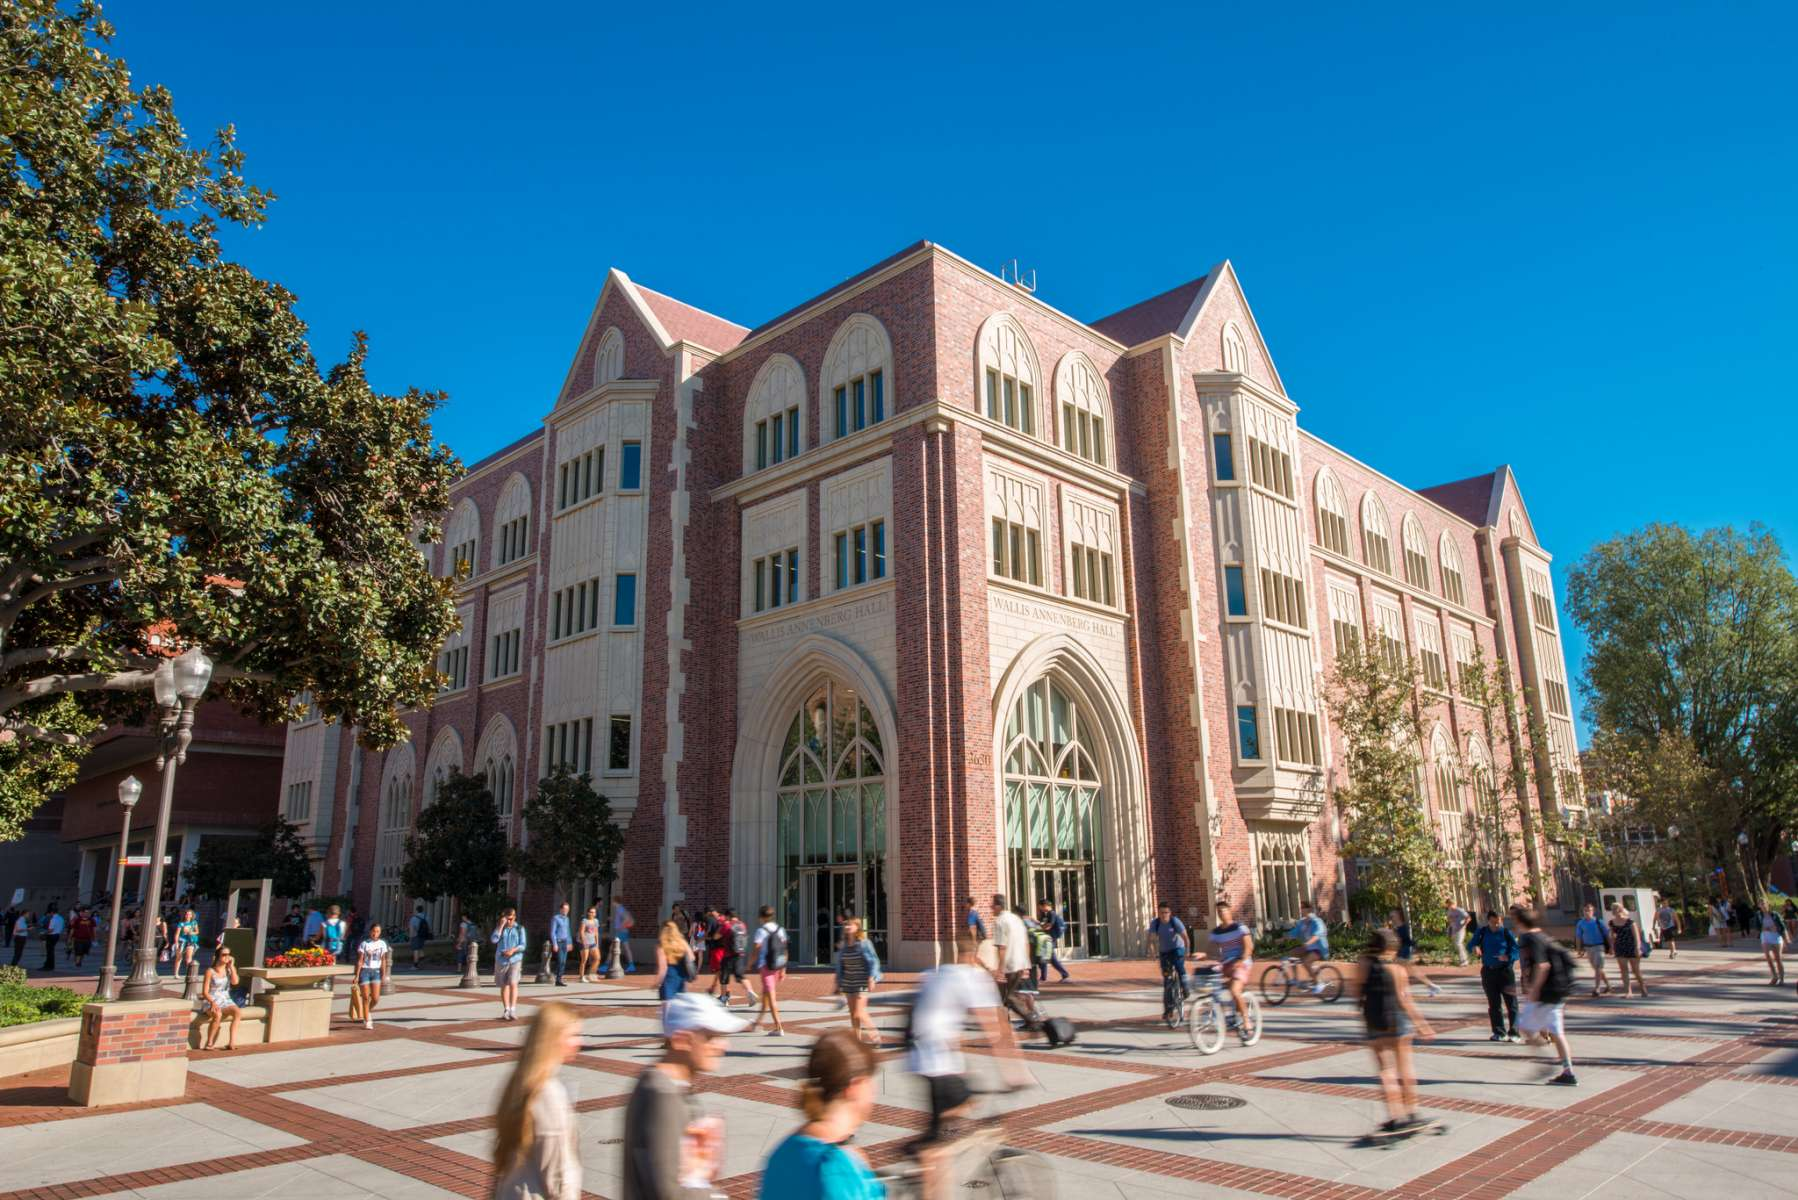 Jobs and Opportunities for Students at University of Southern California